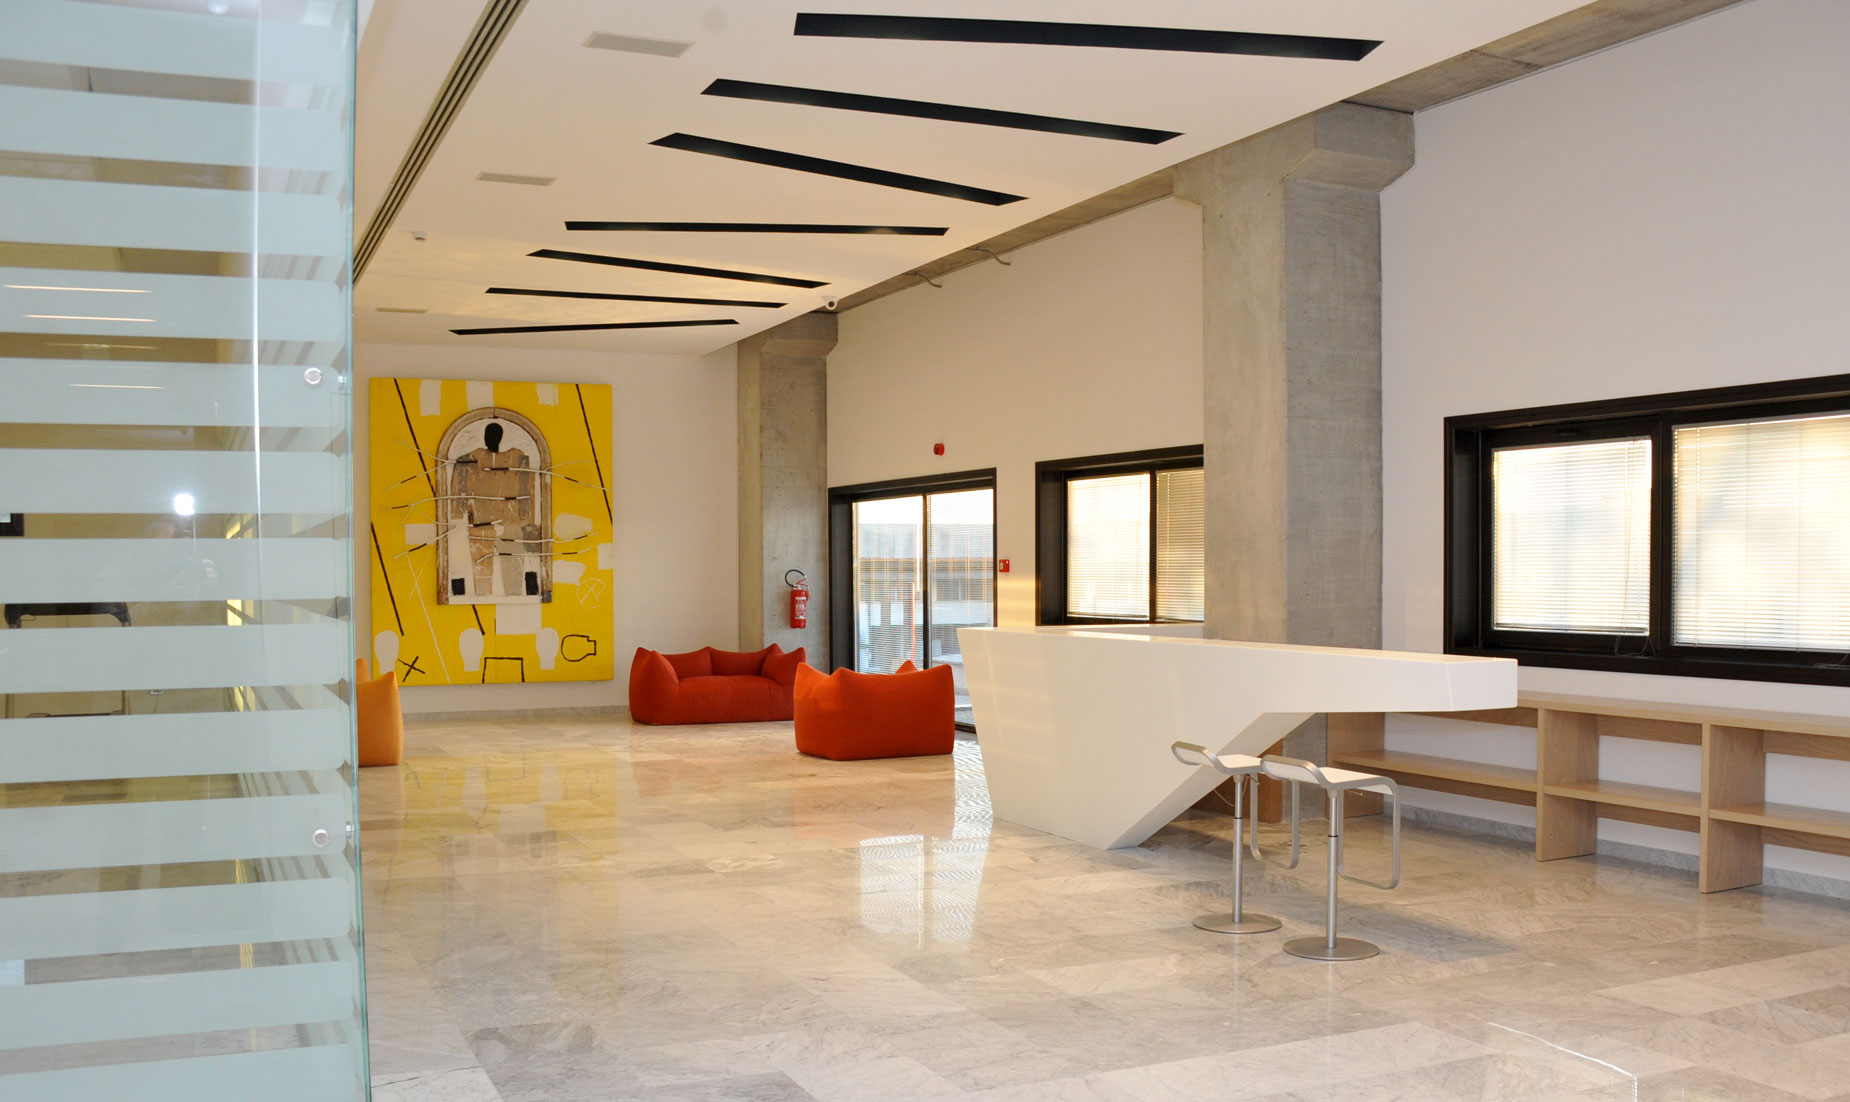 Kiton banco reception in corian Arco Arredo